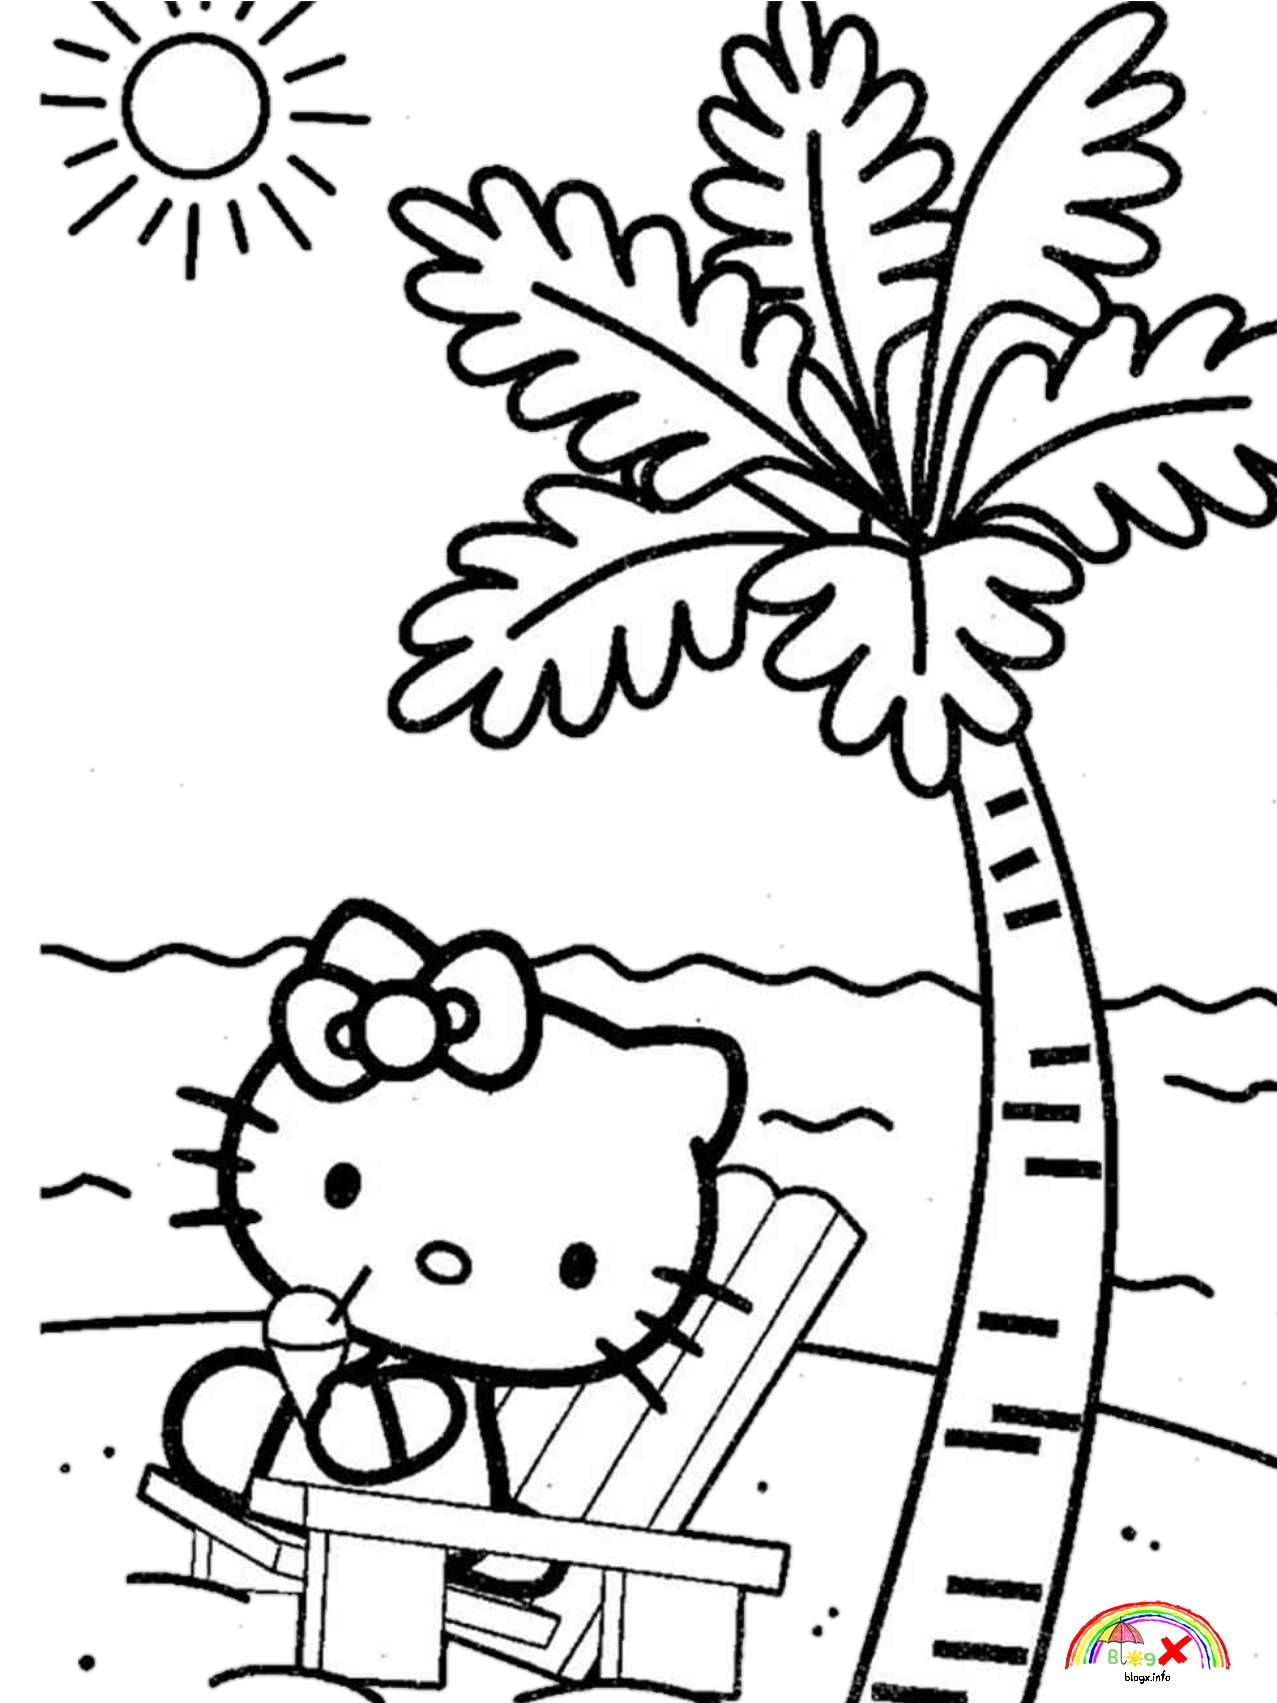 hello kitty beach coloring pages cute hello kitty on the beach coloring page hello kitty pages beach hello coloring kitty